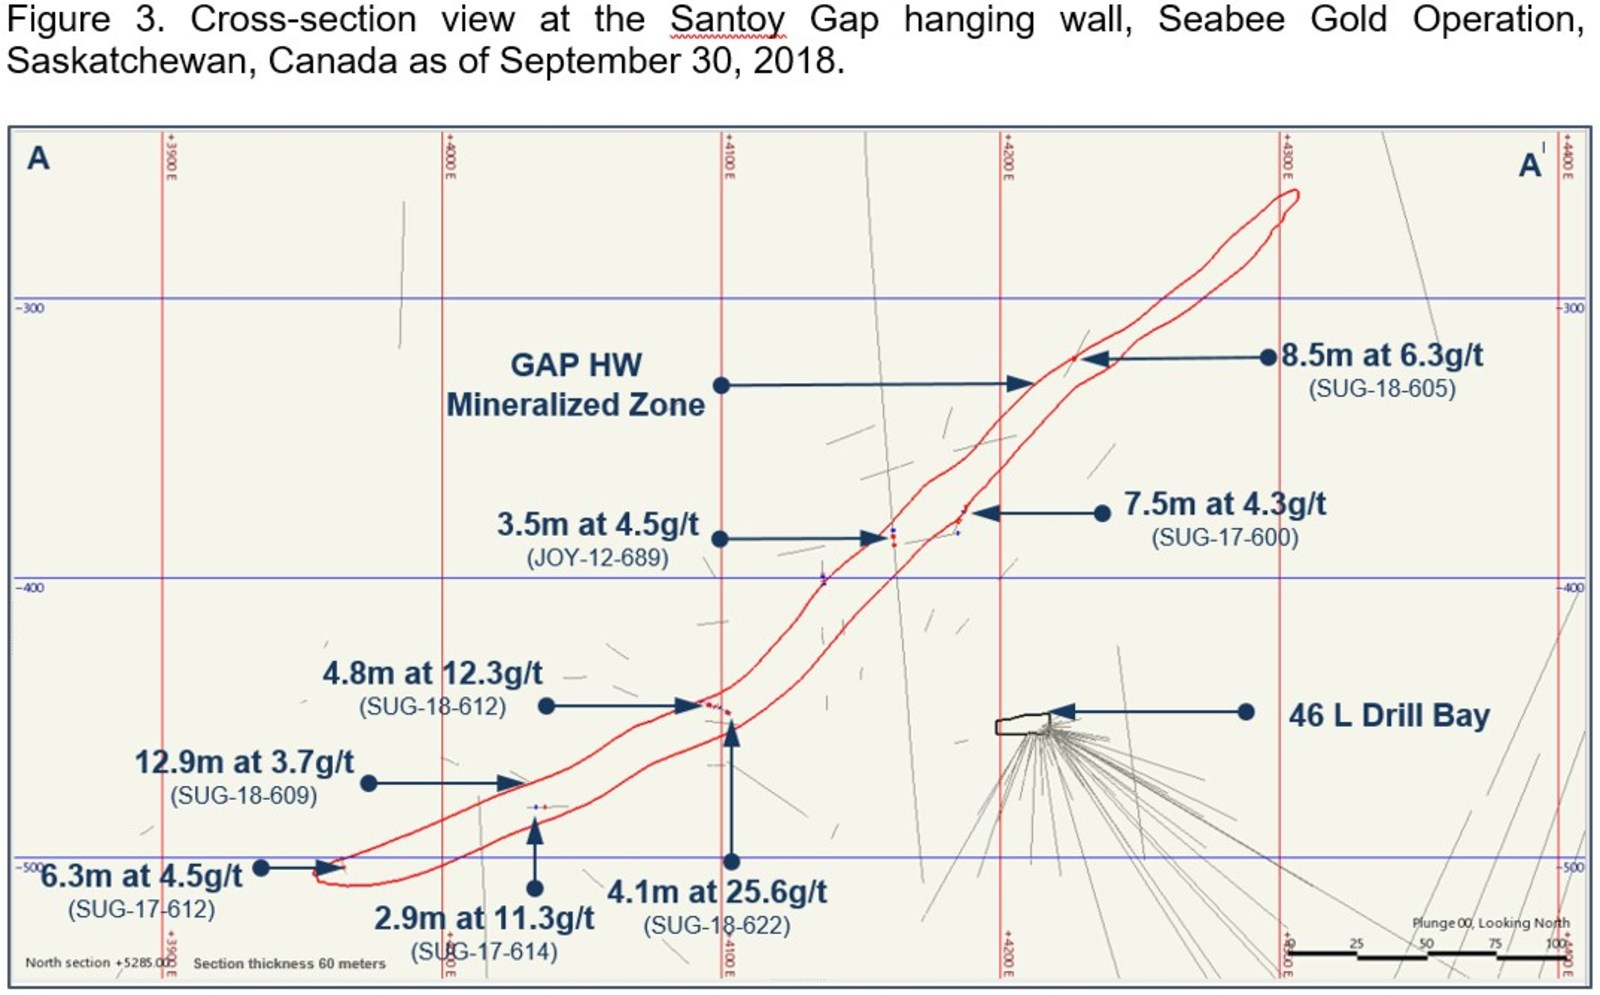 Figure 3. Cross-section view at the Santoy Gay hanging wall, Seabea Gold Operation, Saskatchewan, Canada as of September 30, 2018.